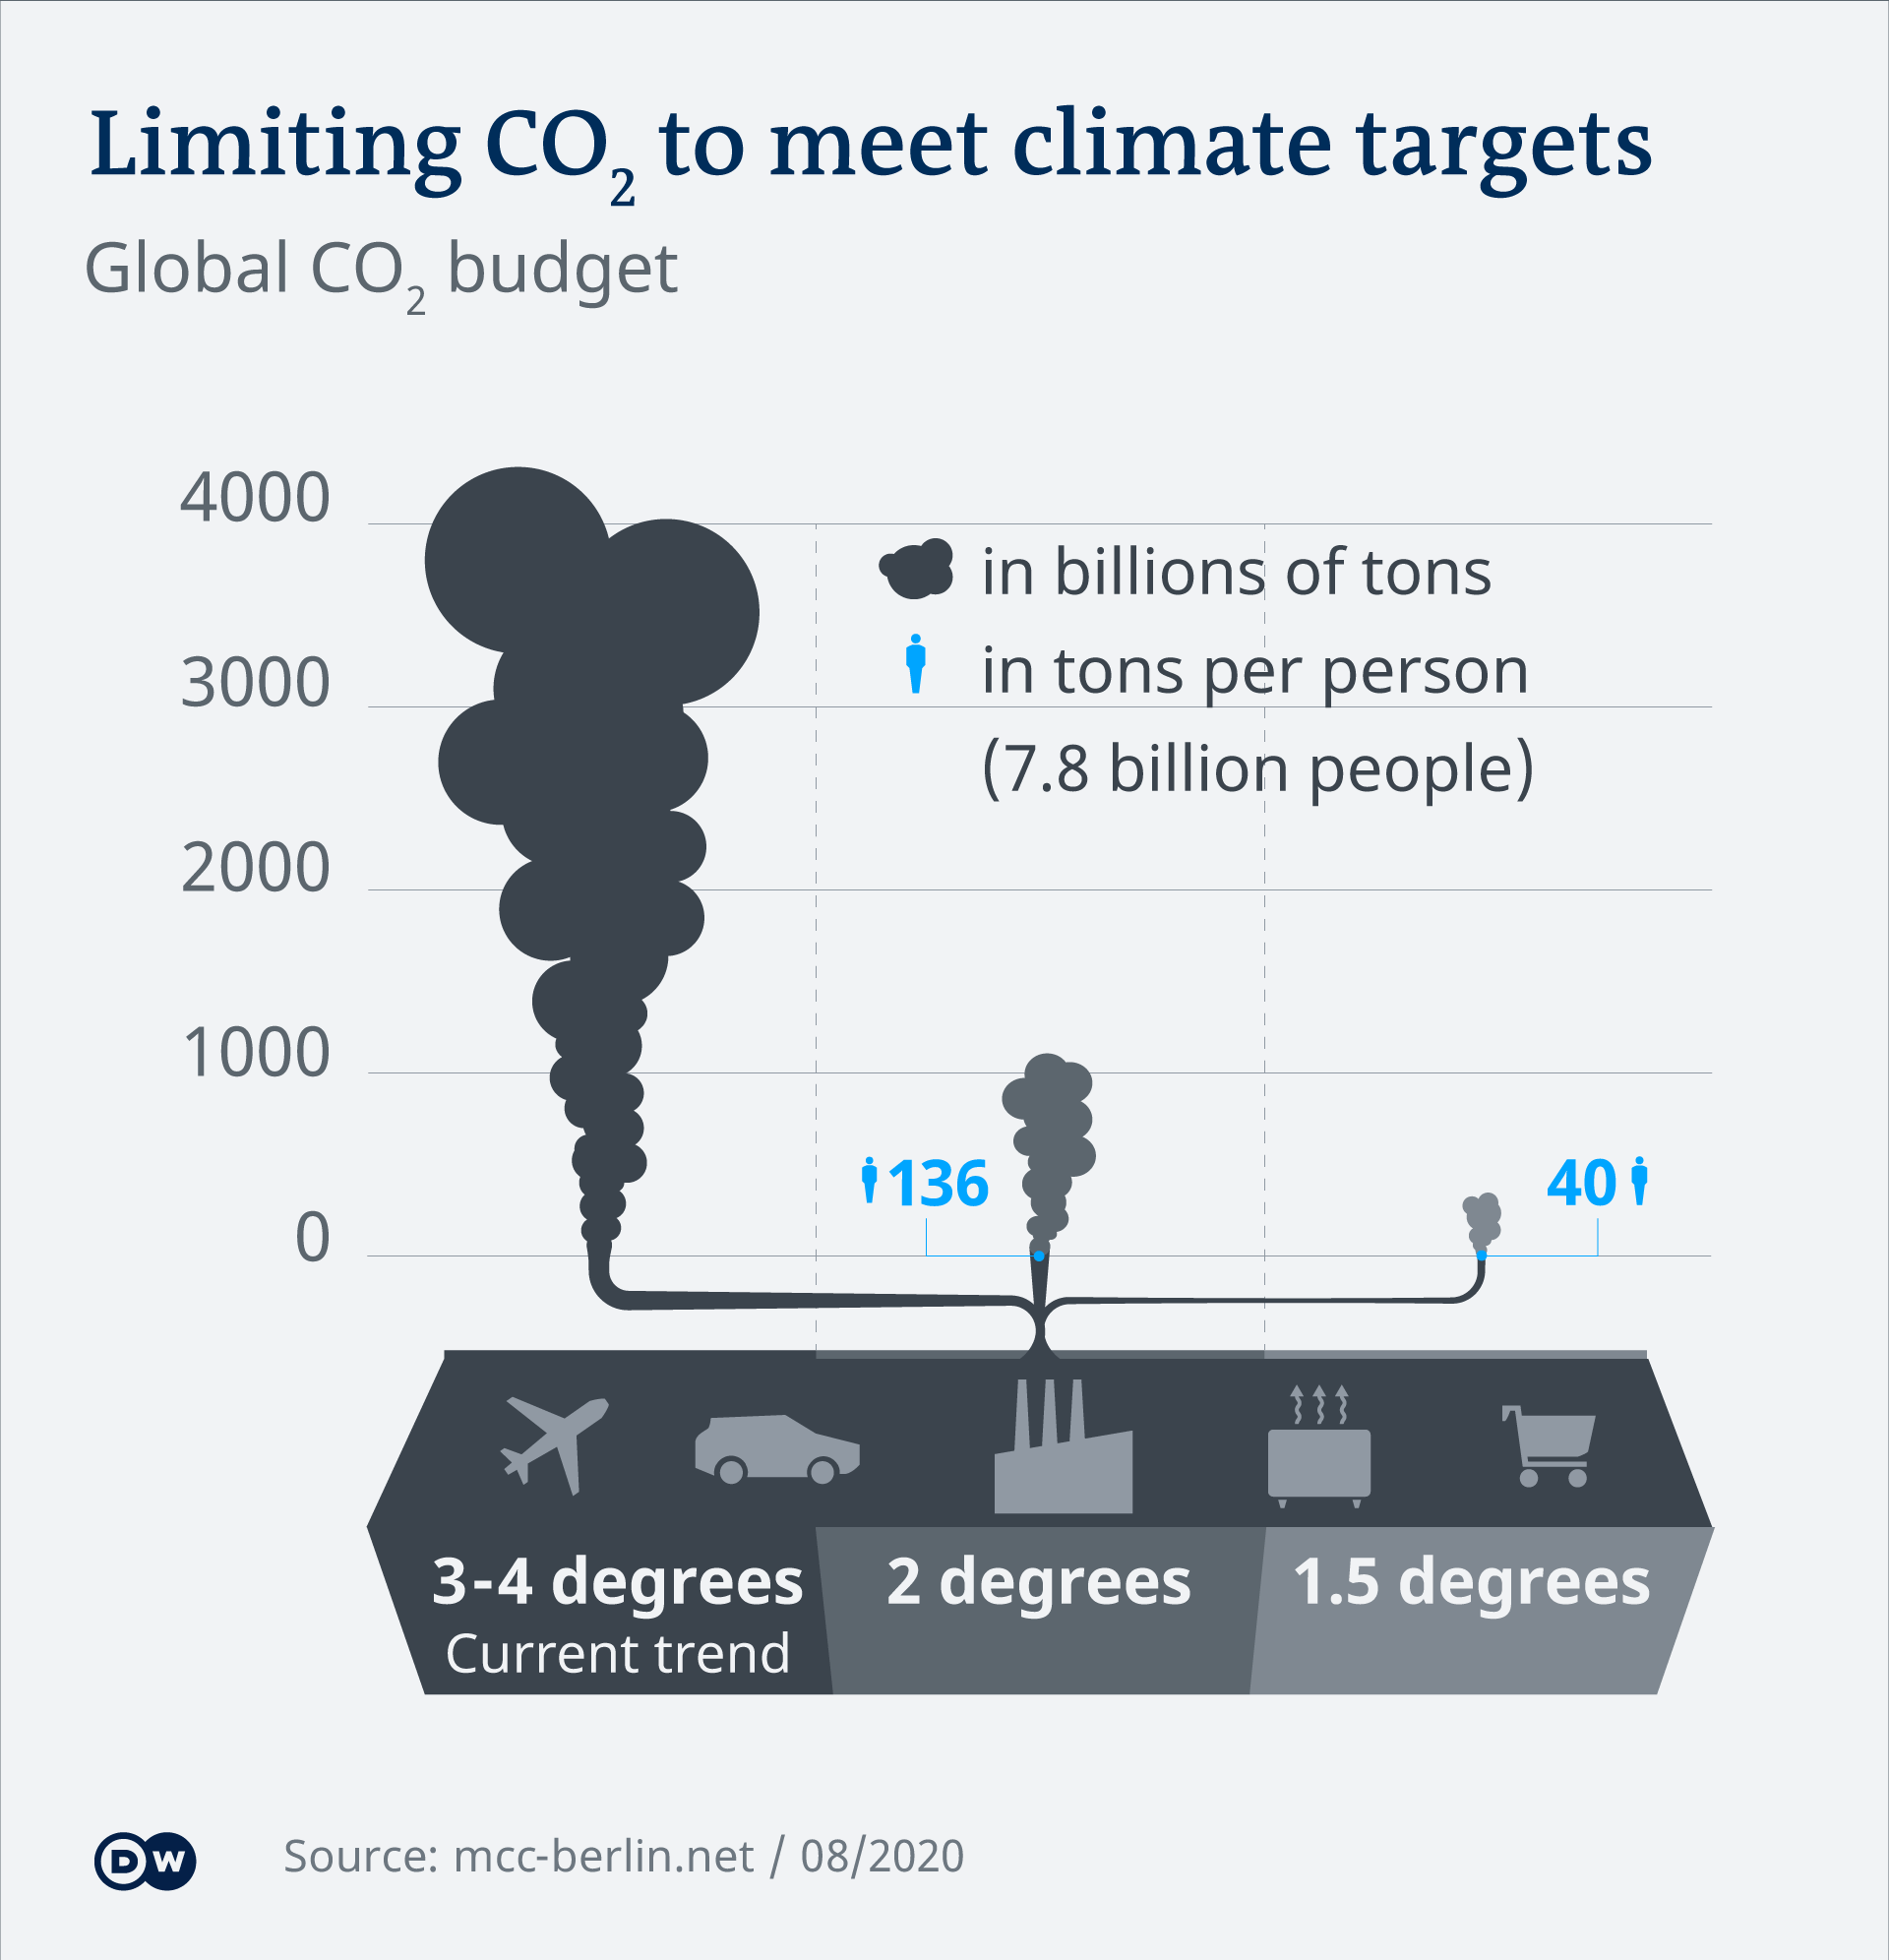 An infographic shows the necessary emissions limits to achieve climate targets